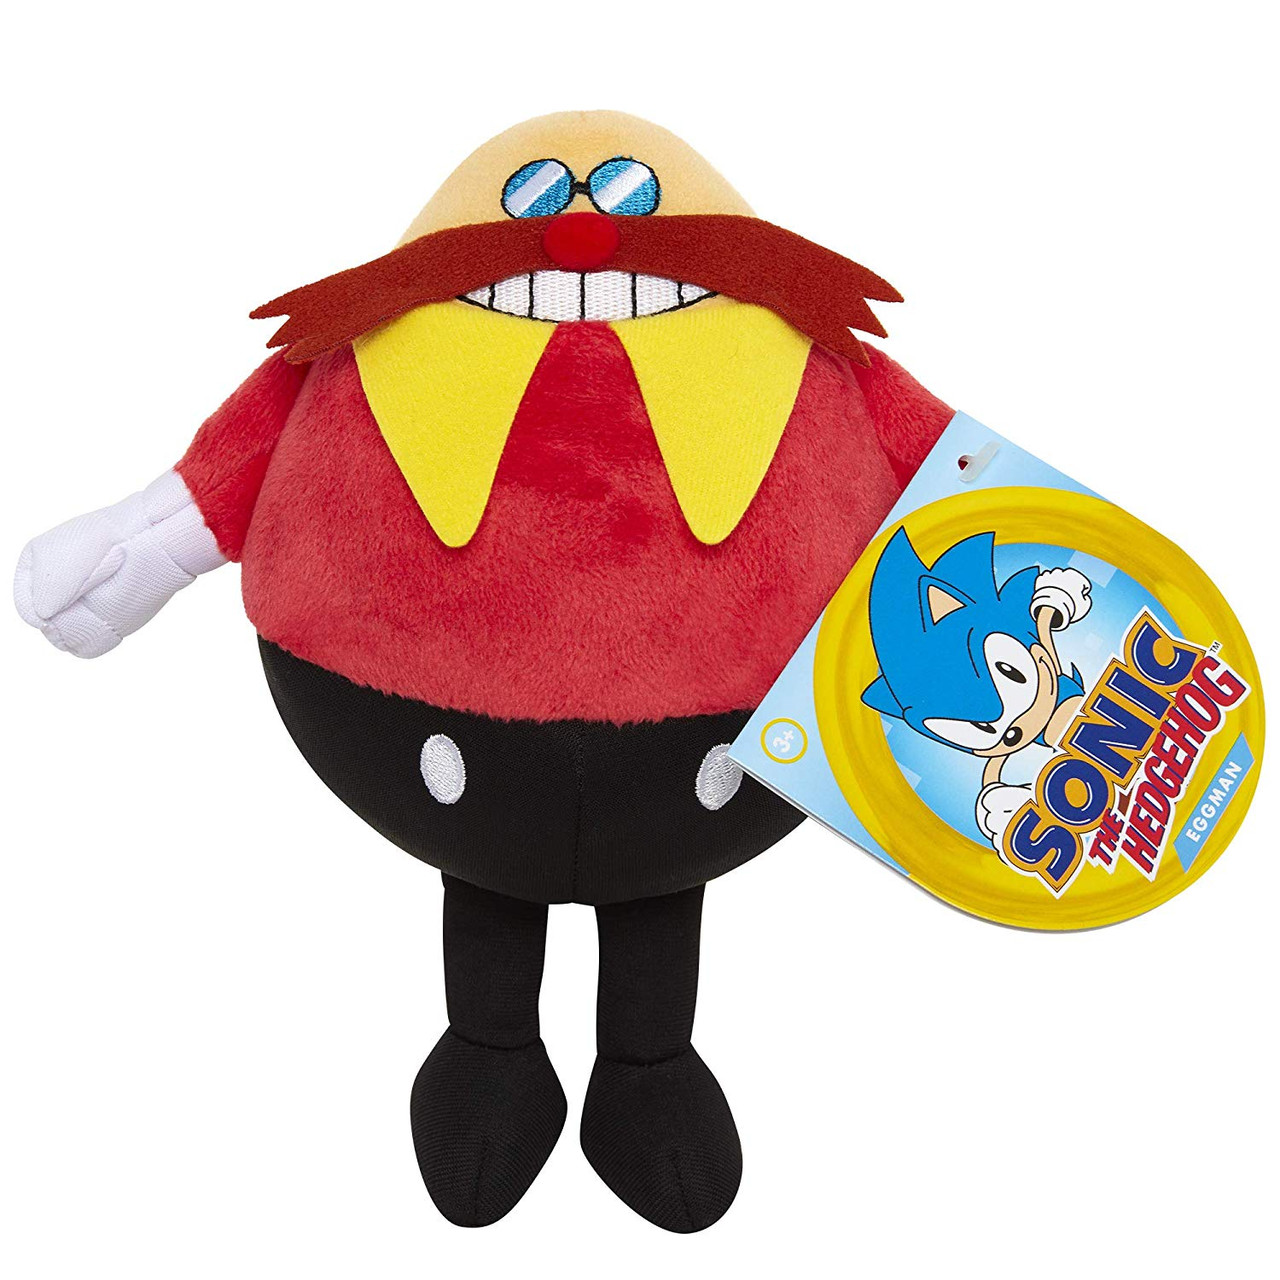 Plush Toy Sonic The Hedgehog Dr Eggman 7 Inch Partytoyz